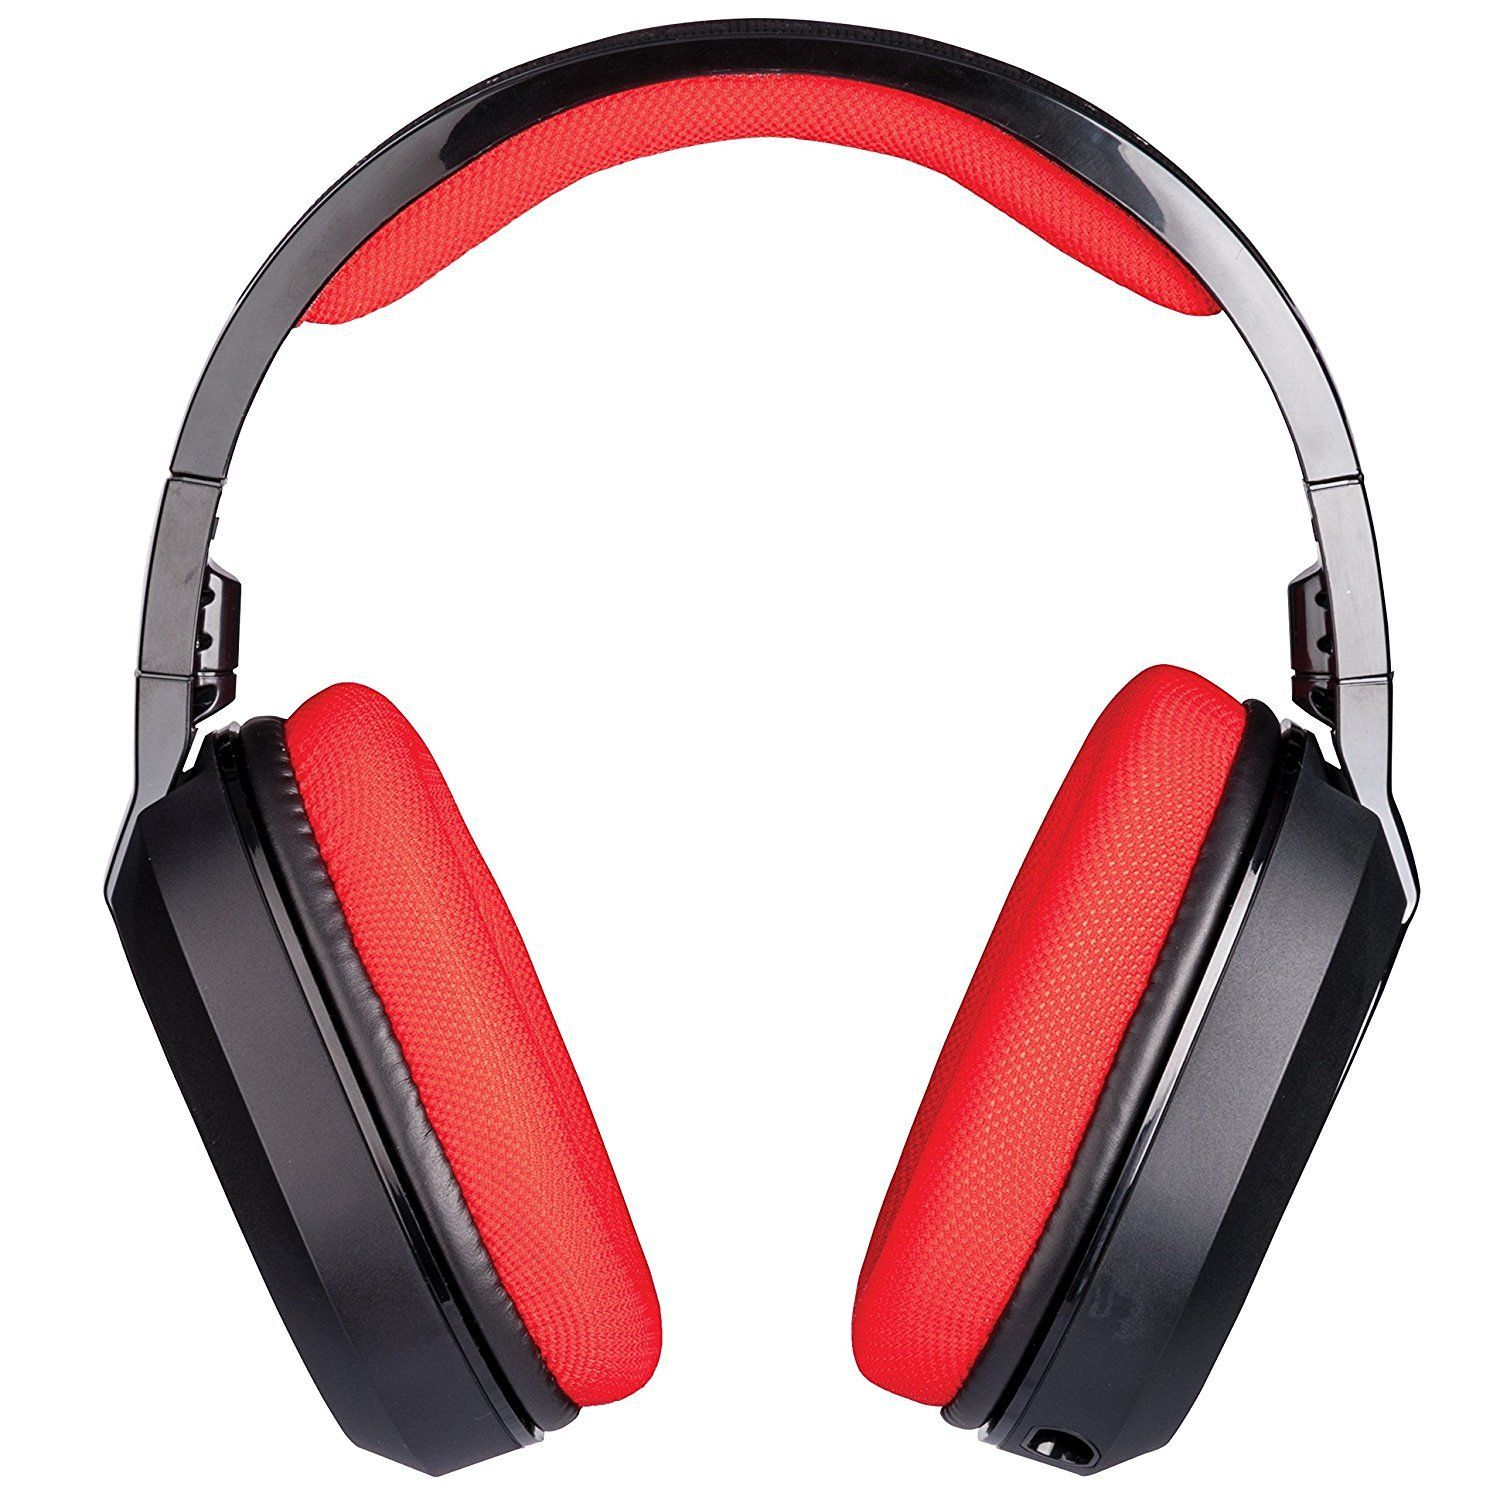 Ear Force Recon 320 Gaming Headset